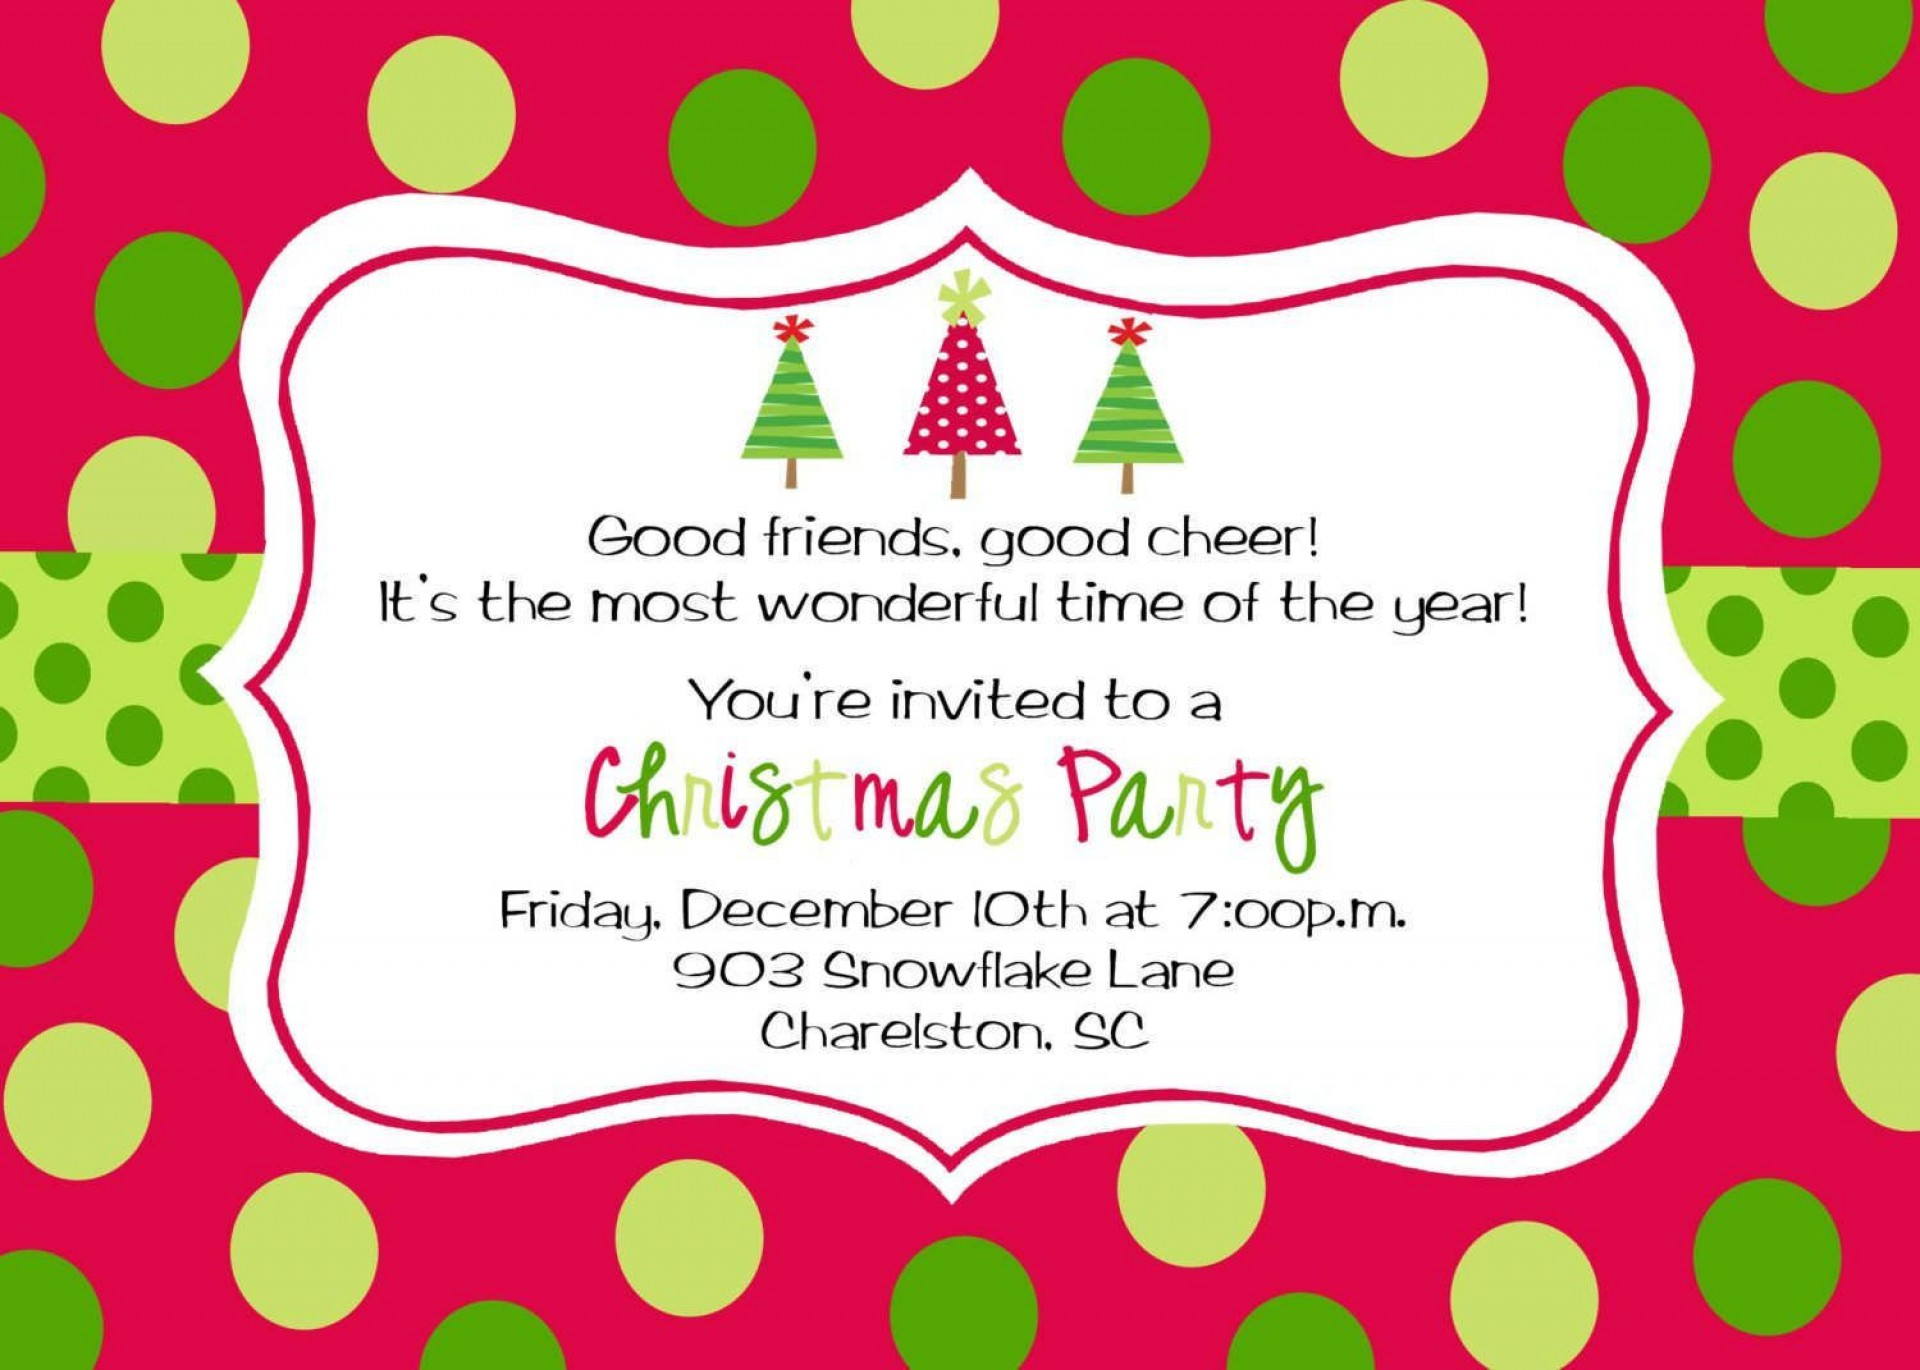 008 Phenomenal Christma Party Invite Template Concept  Microsoft Word Free Download Holiday Invitation Powerpoint1920